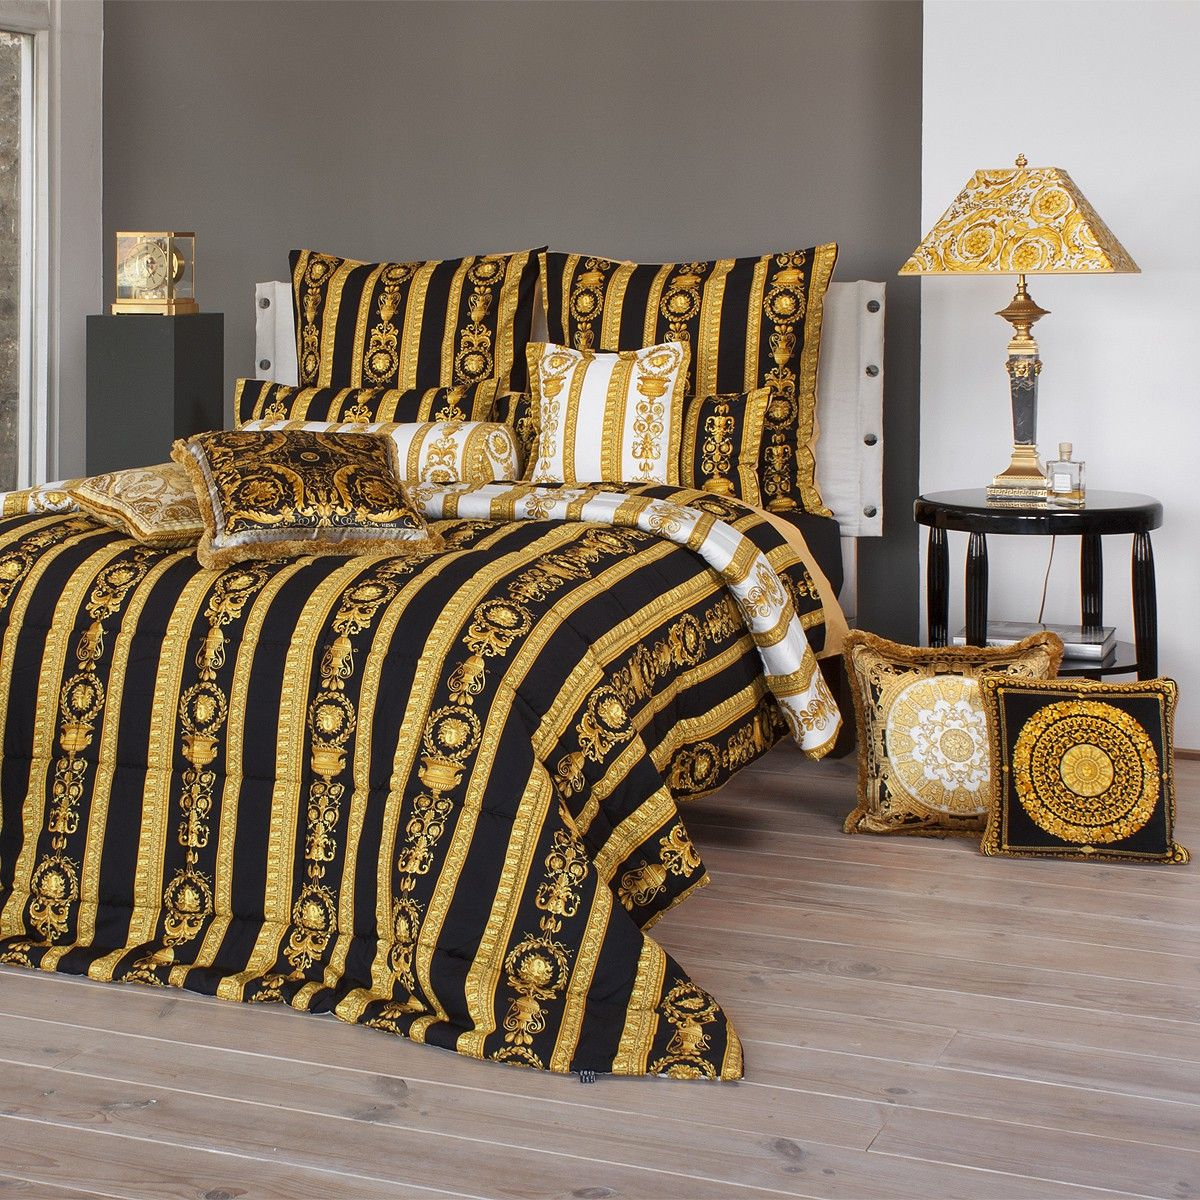 versace tagesdecke bettw sche medusa versace home pinterest versace bed sets and bedrooms. Black Bedroom Furniture Sets. Home Design Ideas